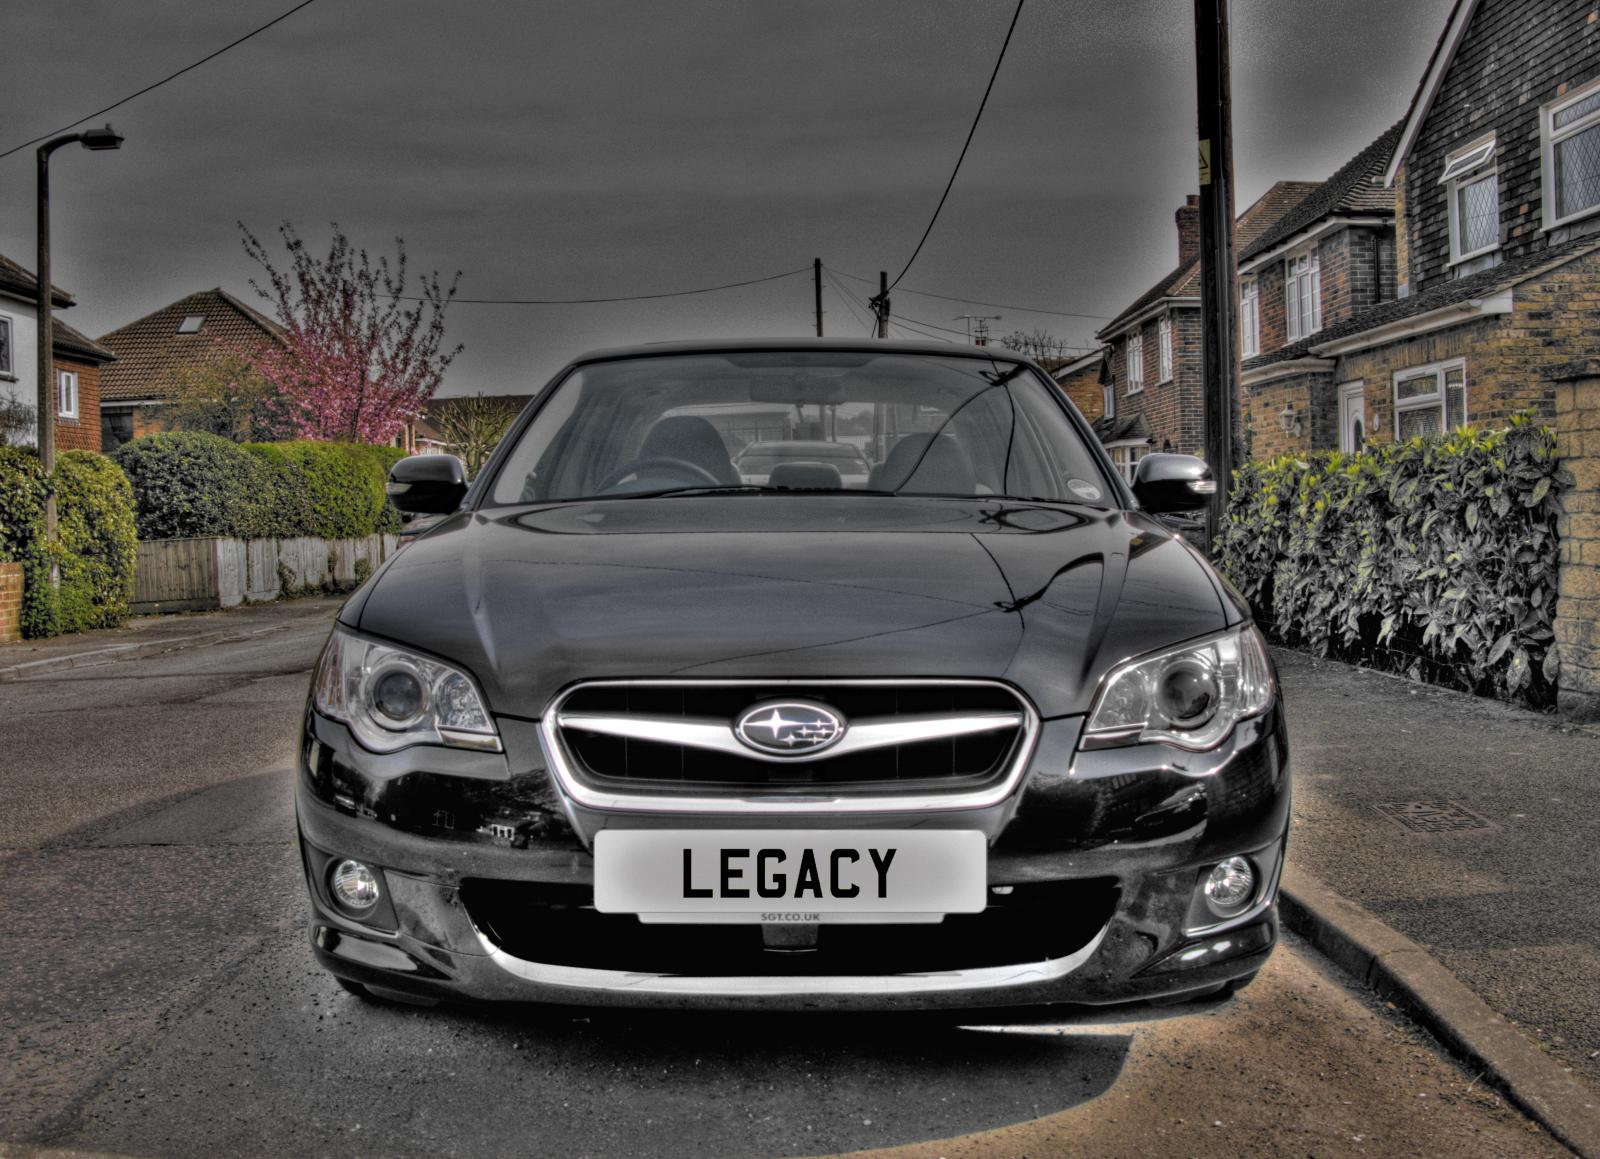 Subaru Legacy: The Most Dependable Vehicle